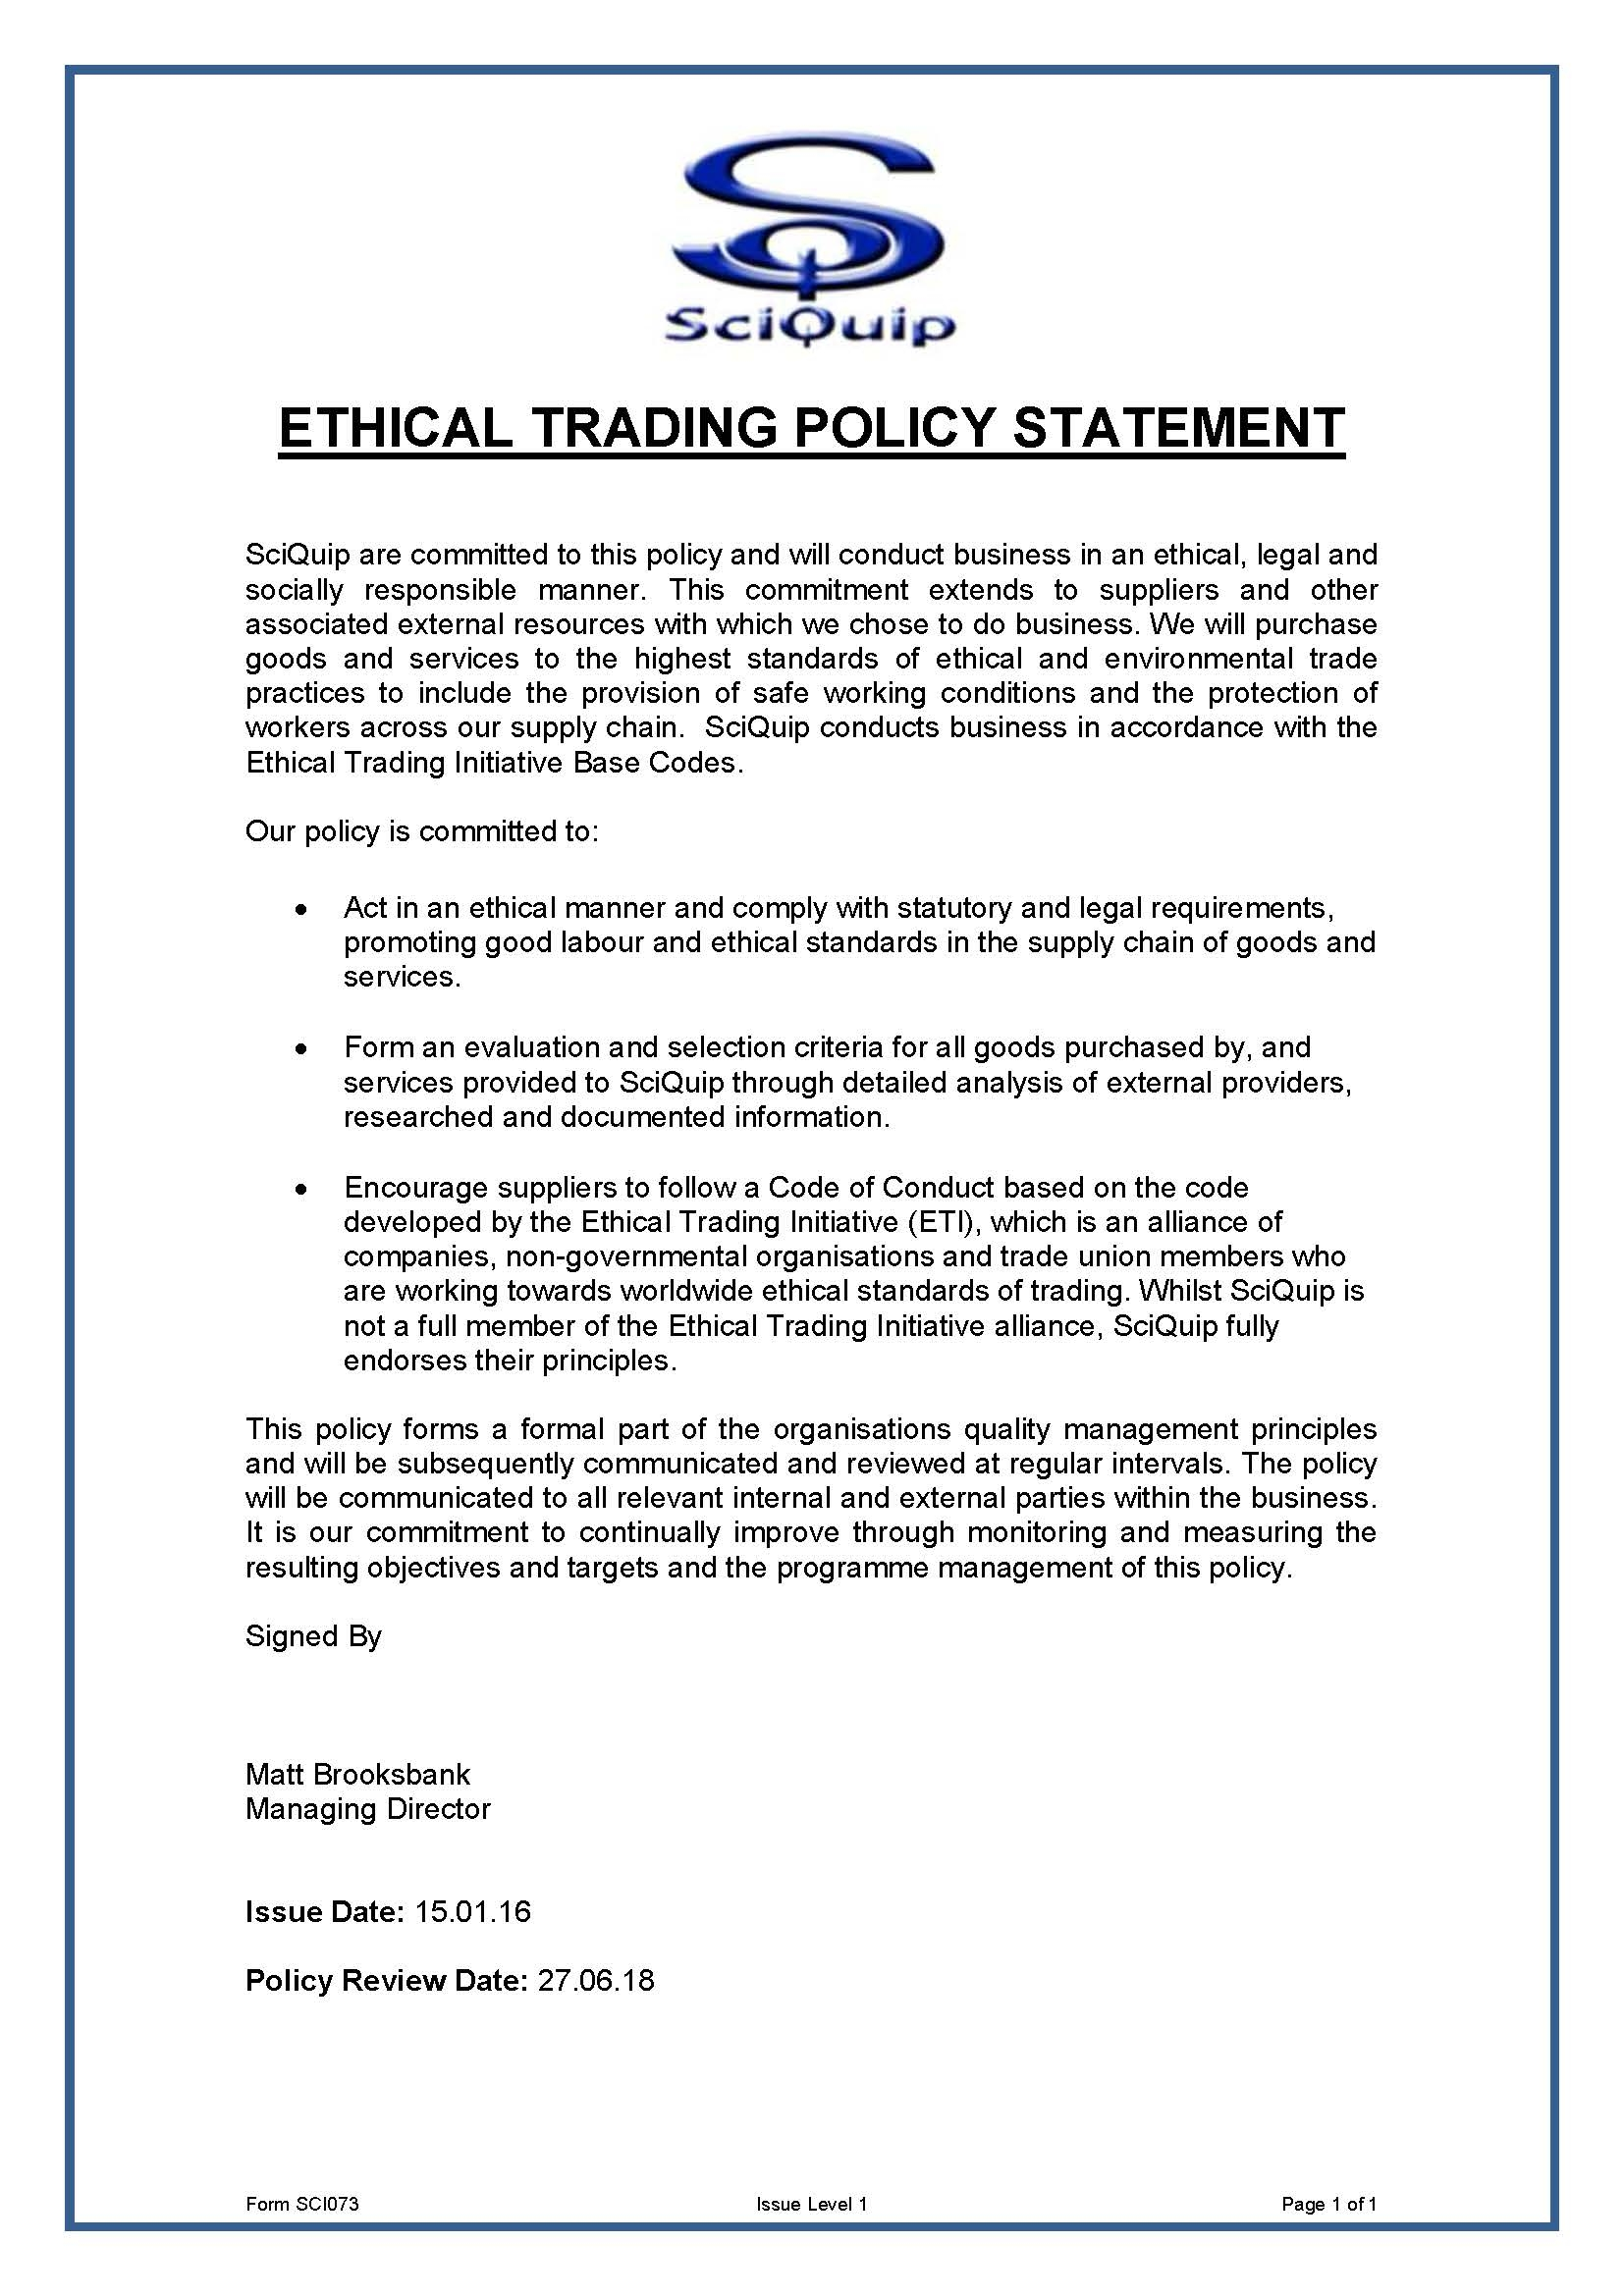 Ethical Trading Policy Statement